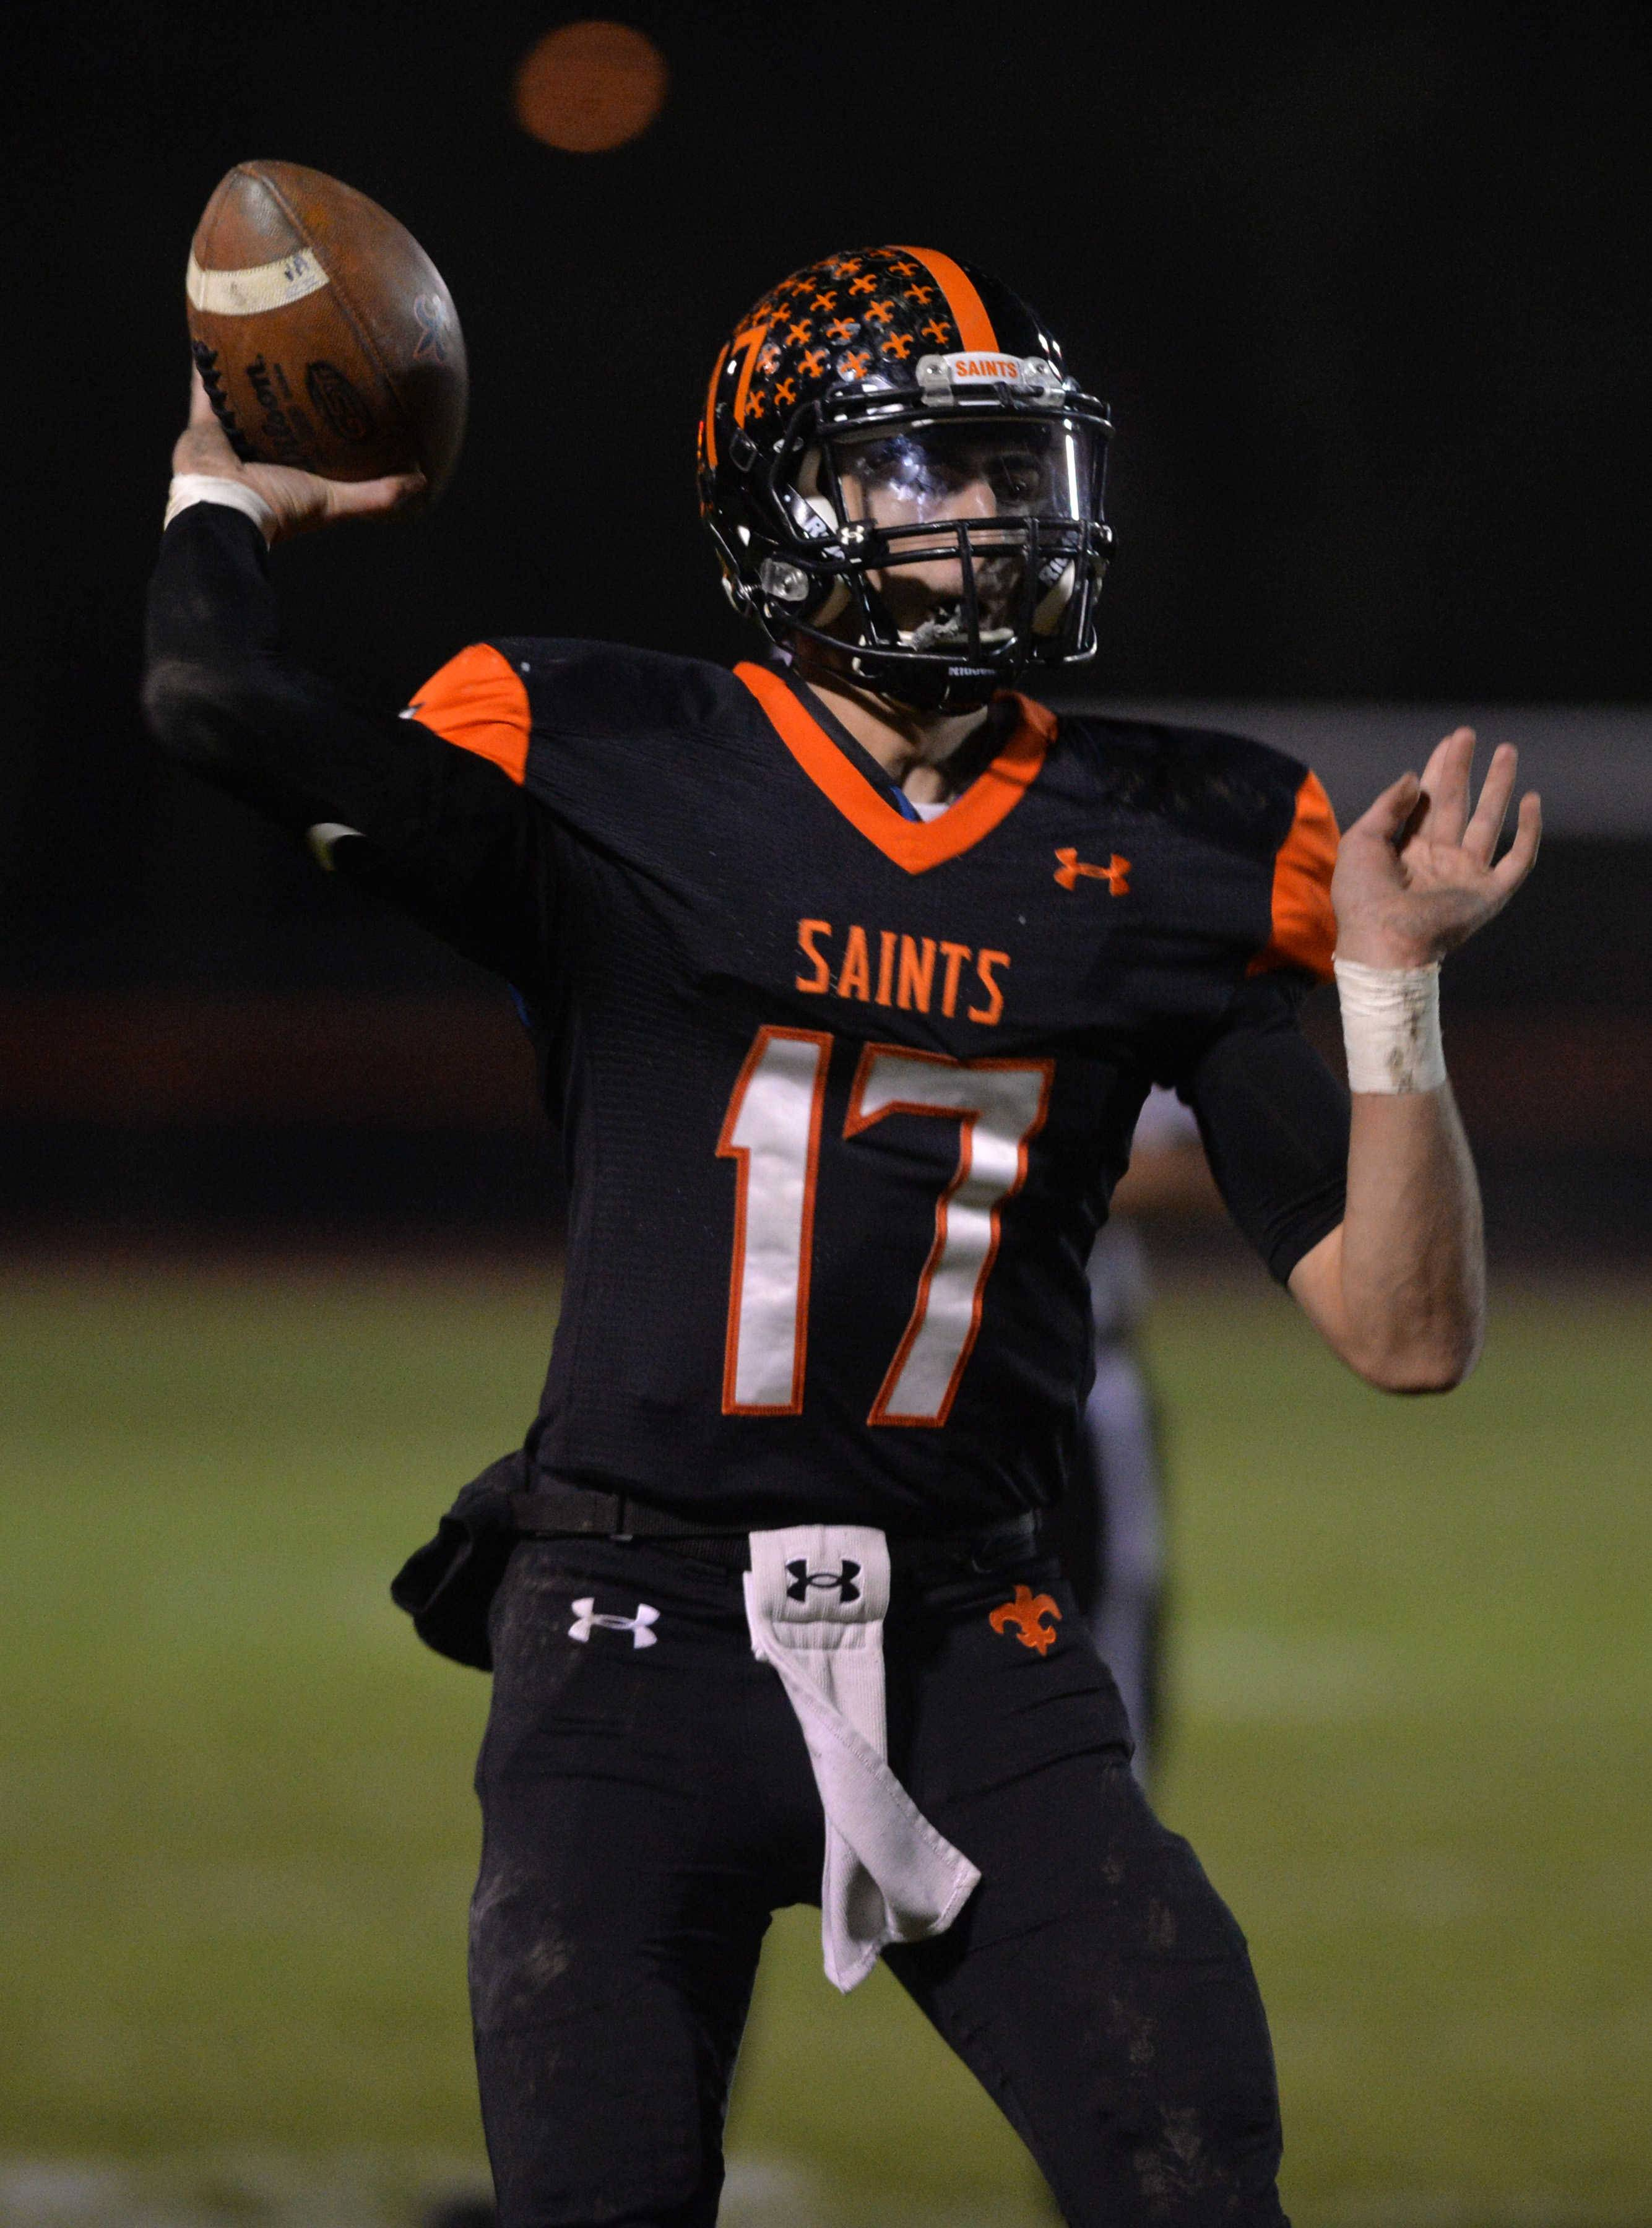 St. Charles East quarterback Zach Mitchell, the 2016 captain of the Daily Herald's Fox Valley All-Area Football Team. passes in the first quarter of a Class 8A playoff win over Lockport.